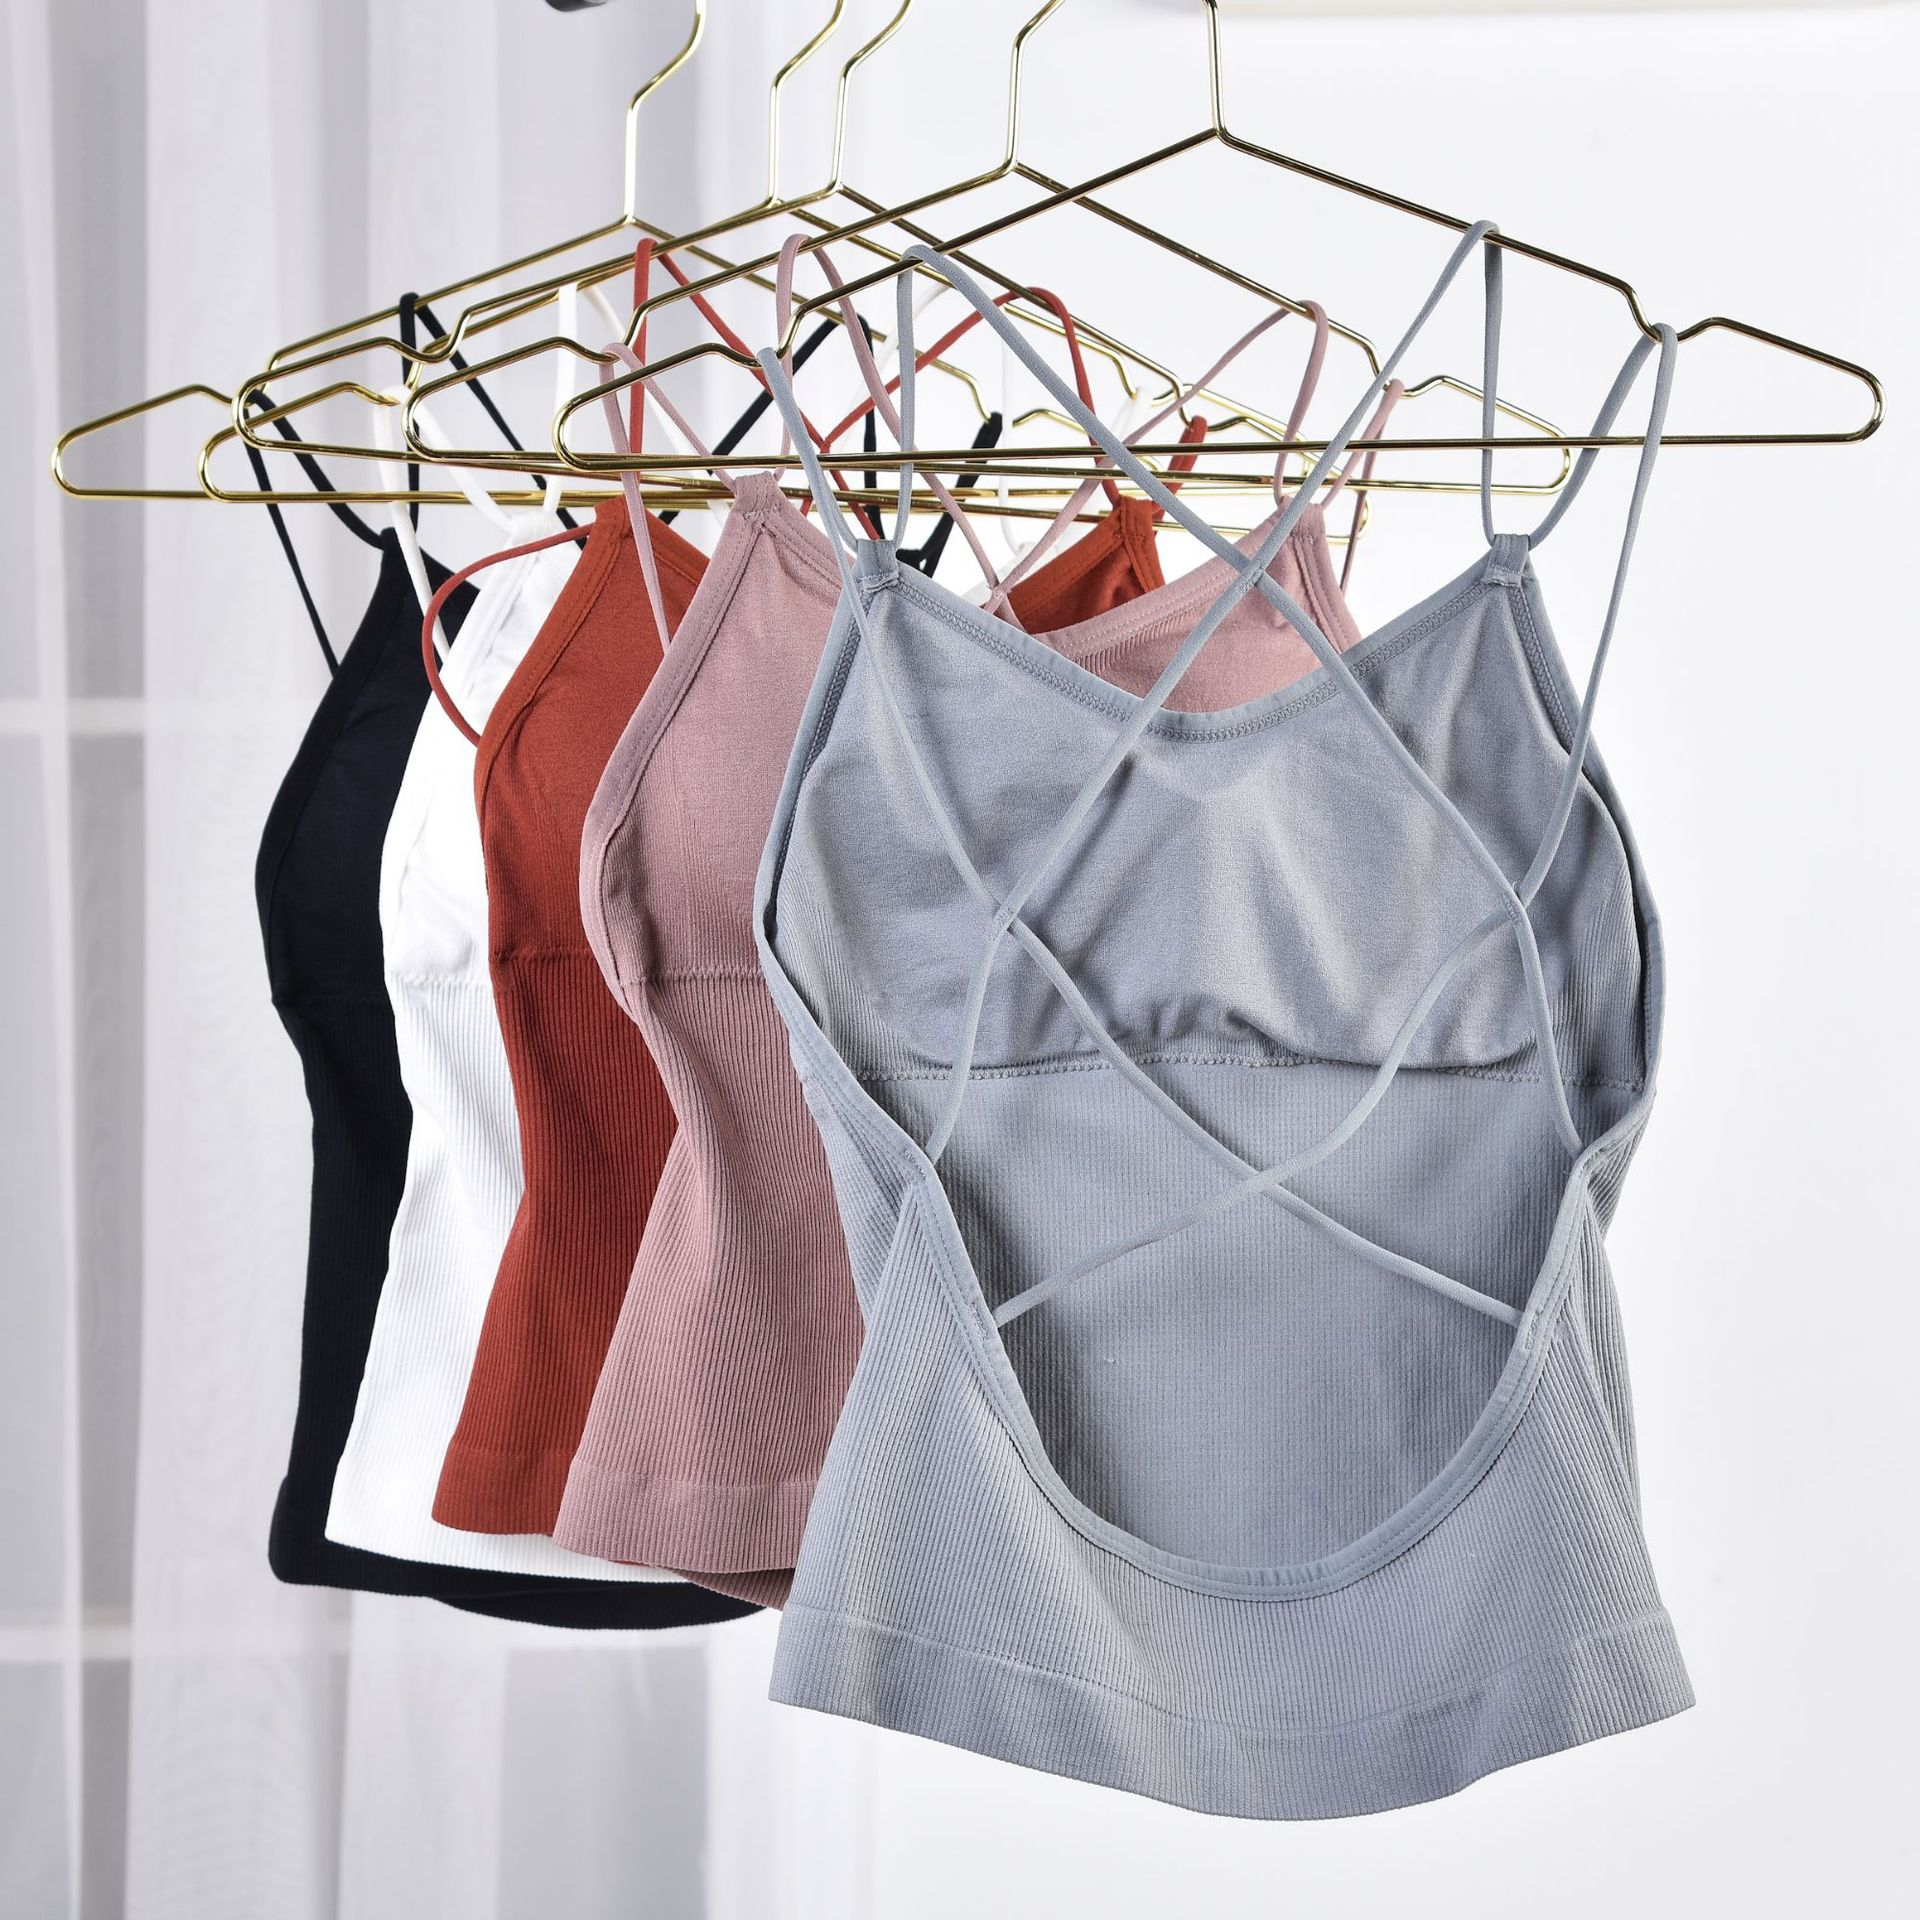 Sexy Crop Top Women Tank Tops Female Cropped Camis Top Cross Back Comfort Underwear Summer Padded Top Sleeveless Camisole Femme